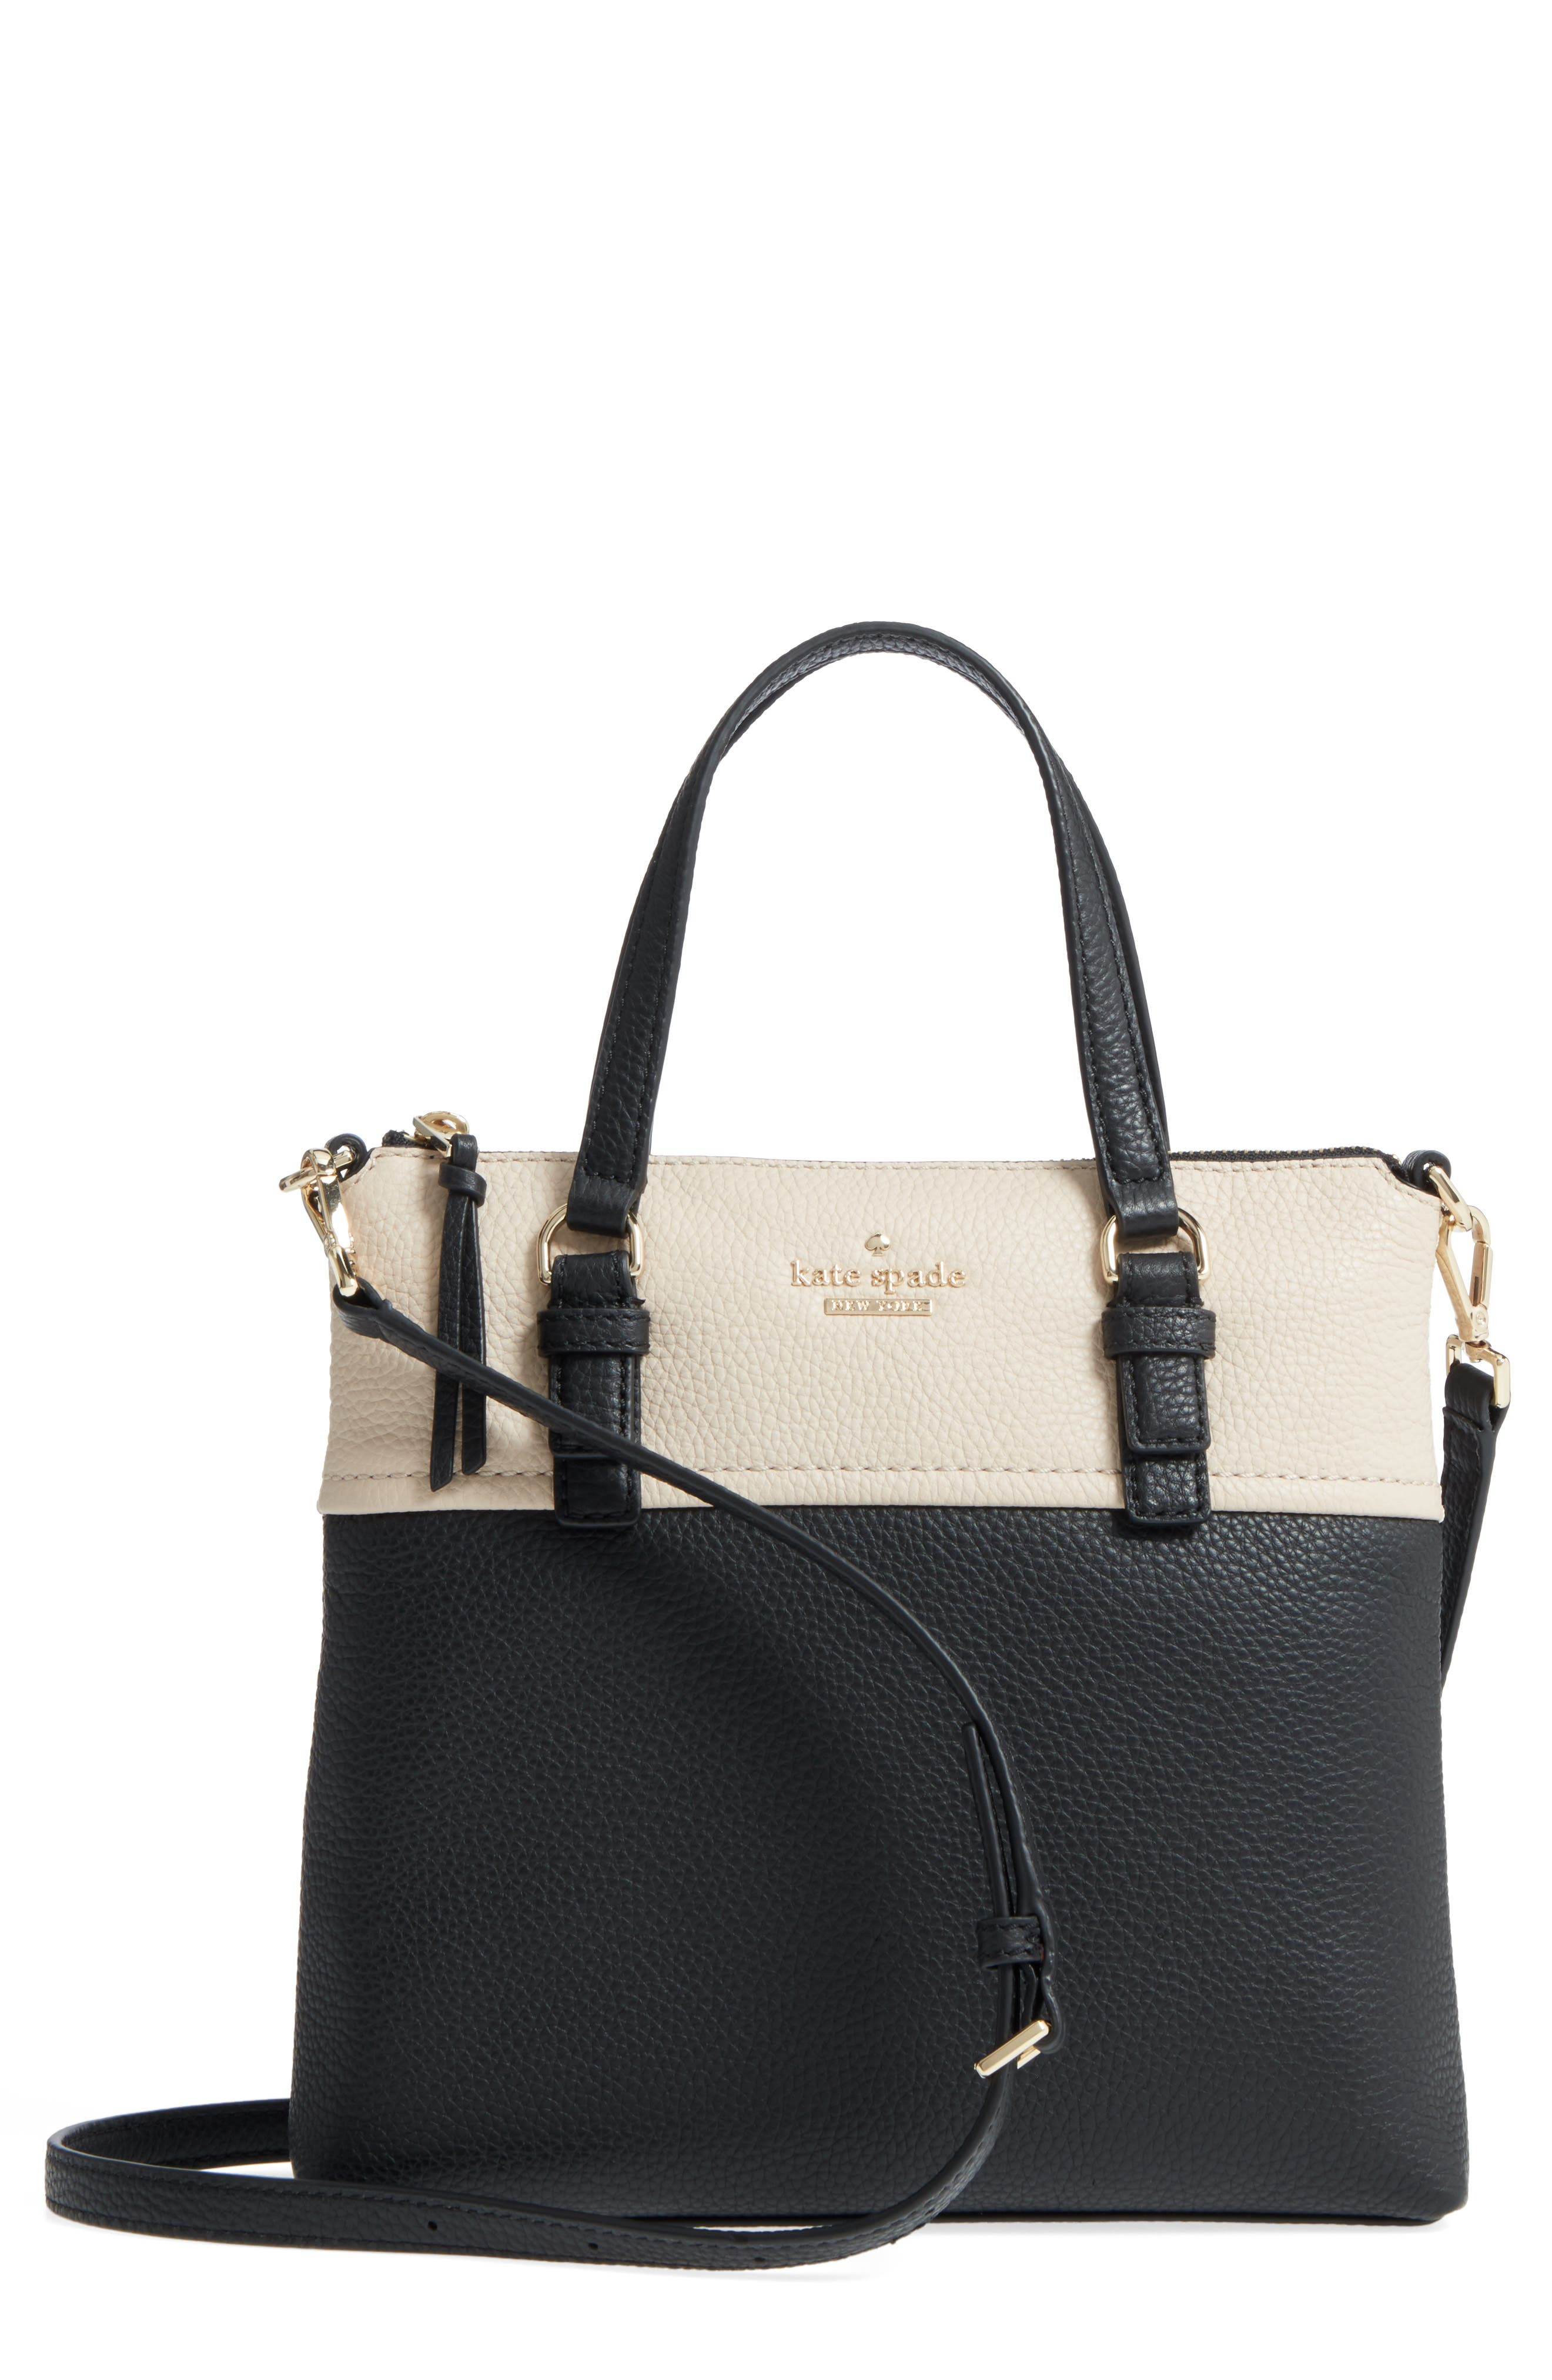 Main Image - kate spade new york jackson street - hayley leather satchel